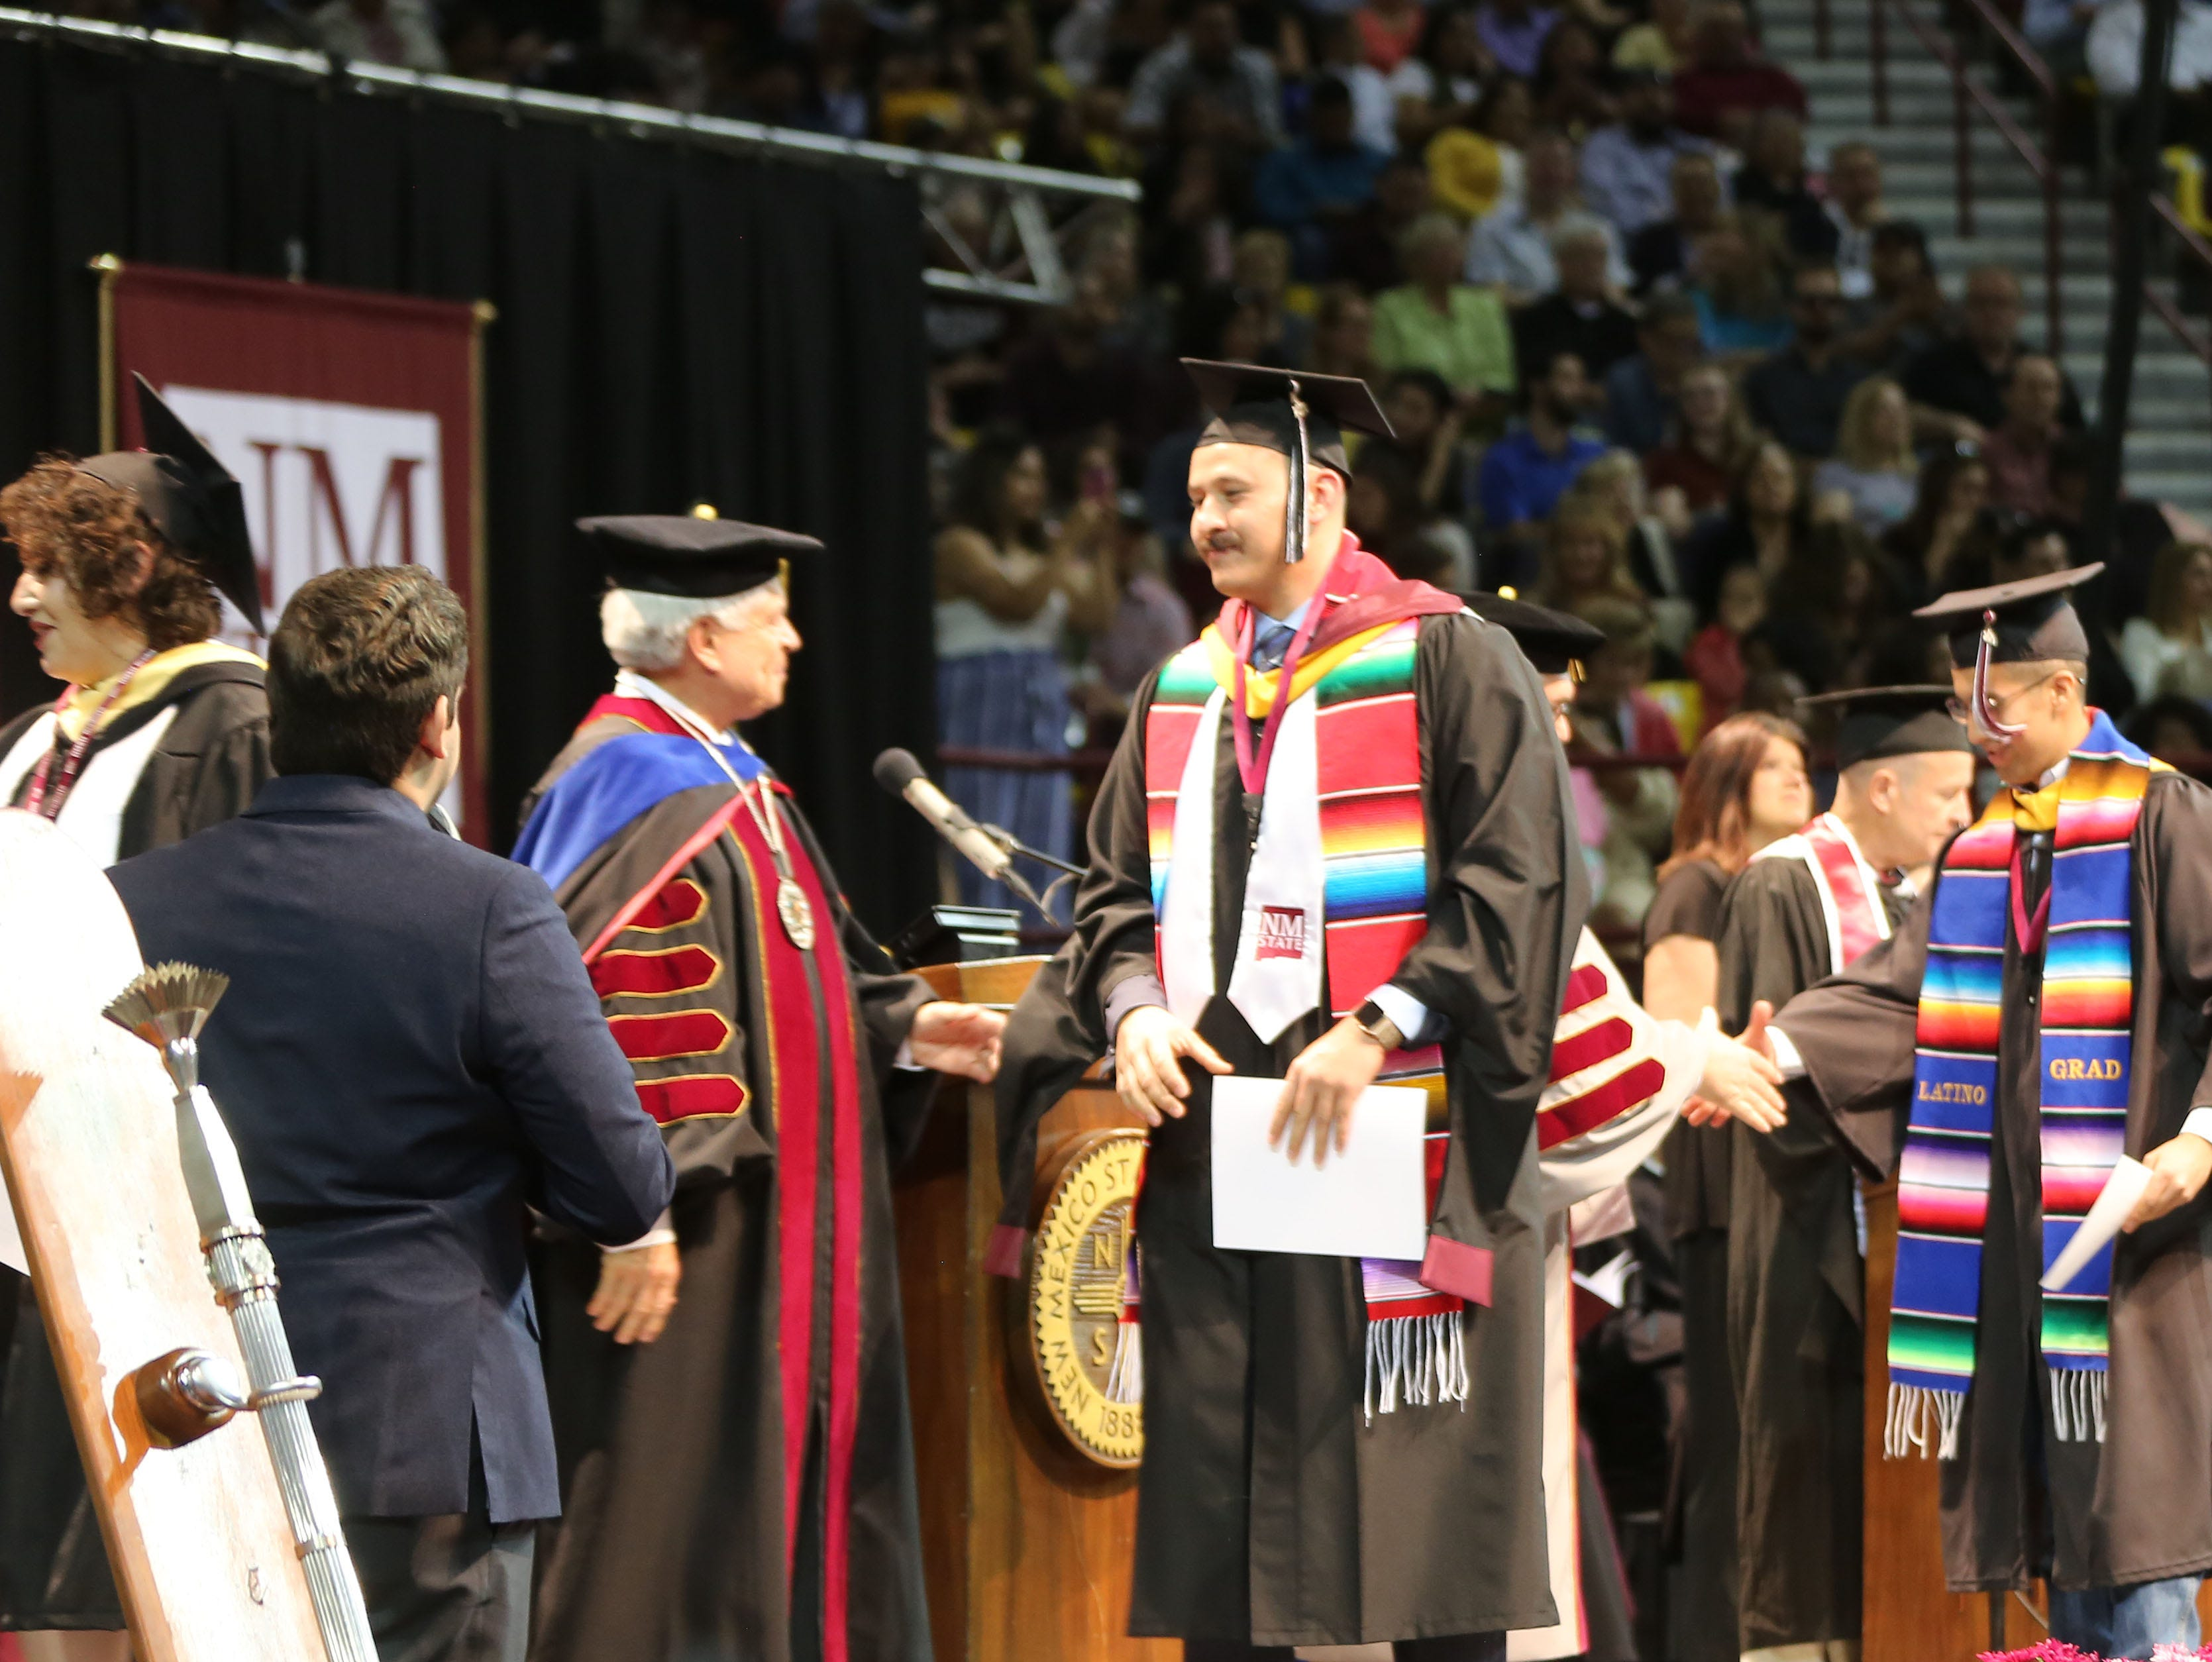 New Mexico State Universities Department of Arts and Sciences awarded 615 degrees this year, during two commencement ceremonies Saturday May 11, 2019.